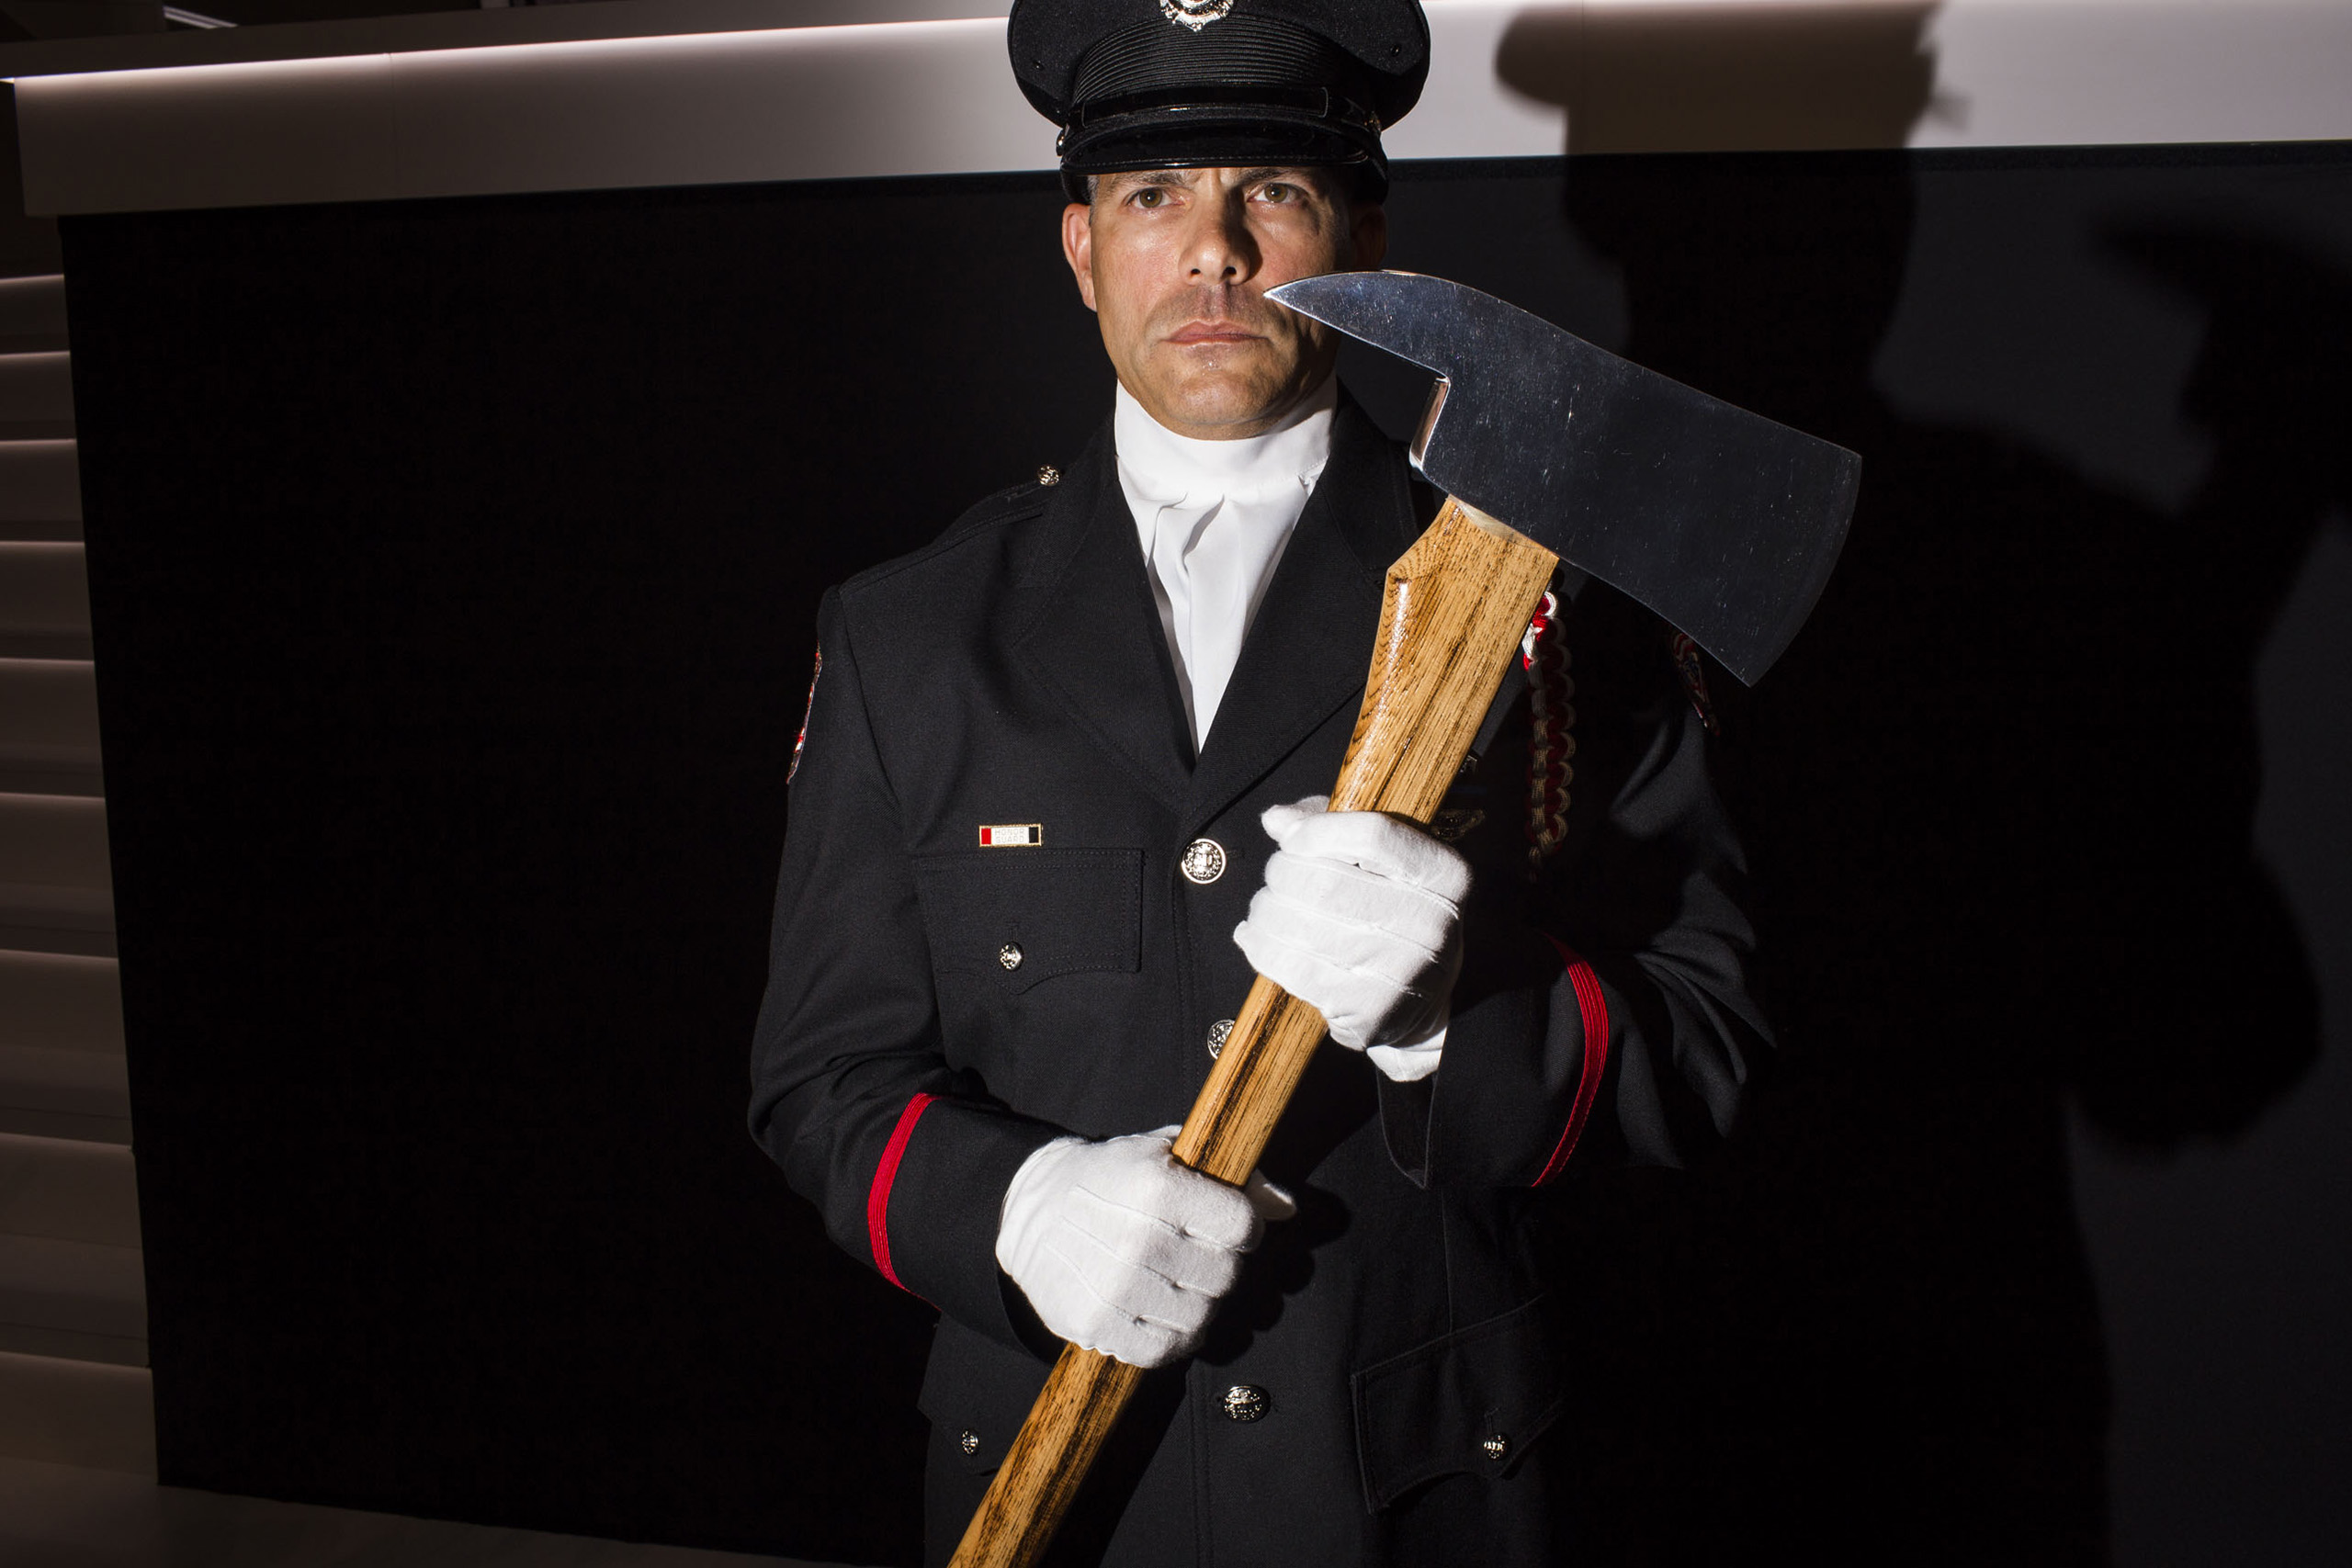 A member of the honor guard on the first day of  the Republican National Convention, July 18, 2016 in Cleveland.